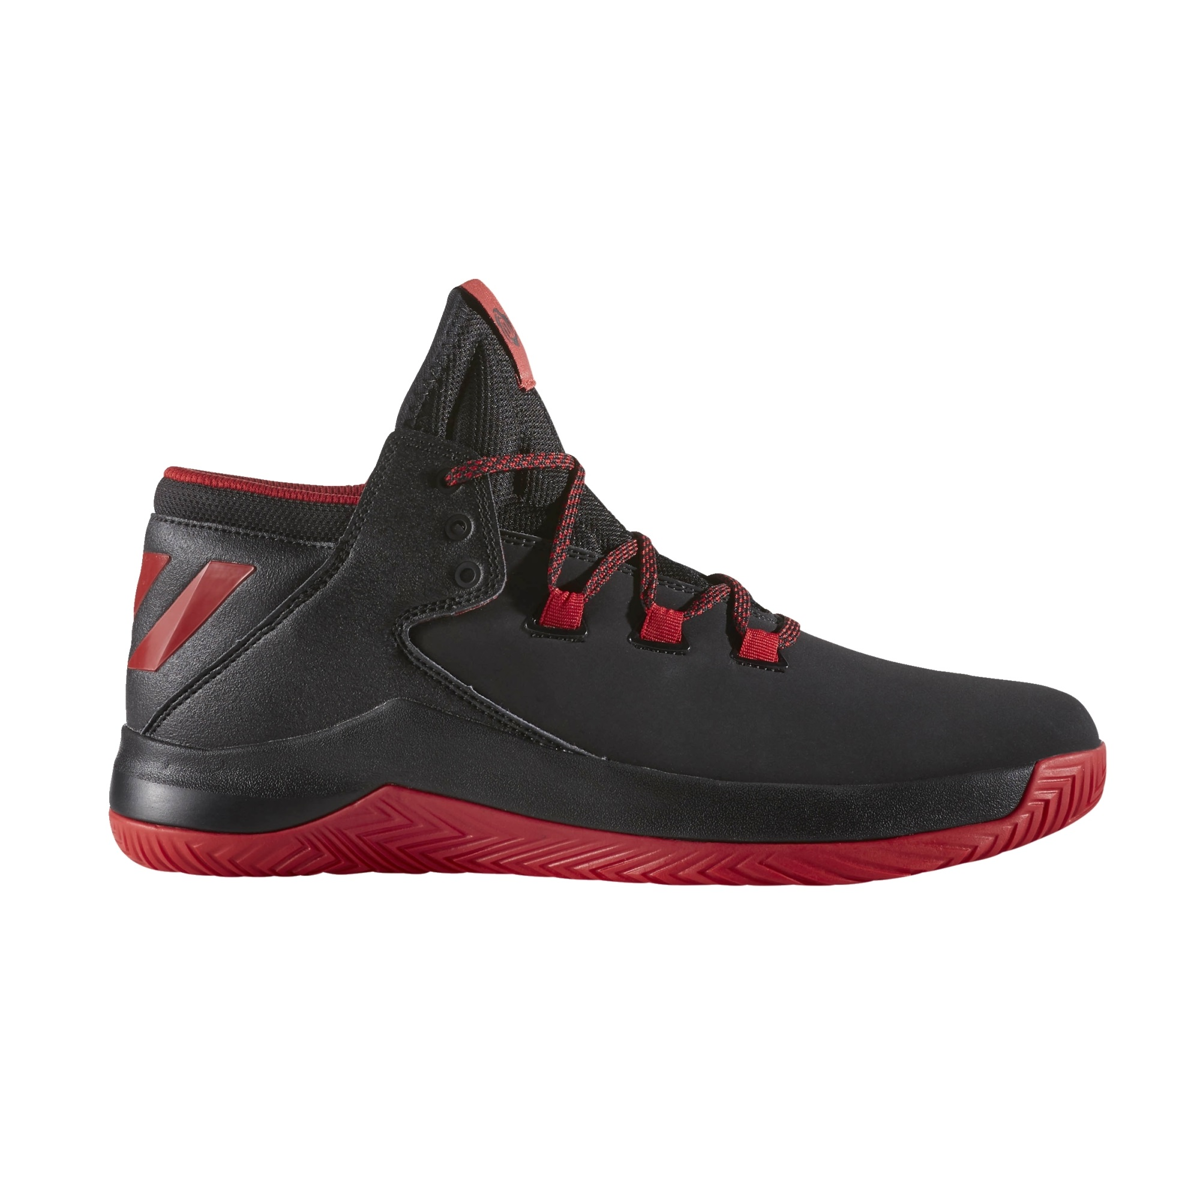 Derrick Rose Basketball Shoes For Kids